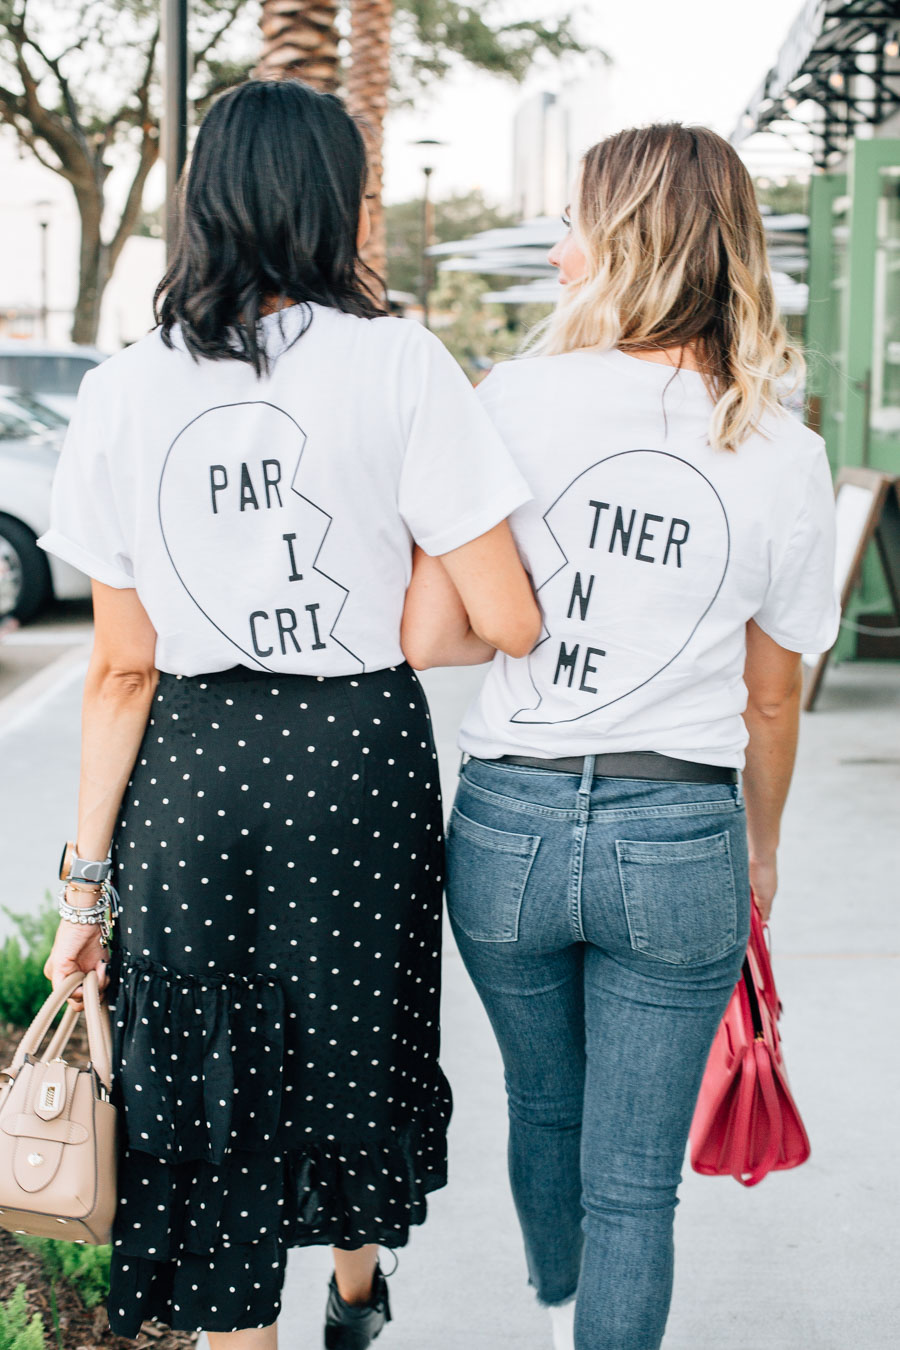 best friend outfits worn by fashion bloggers Lilly Beltran and Elly Brown